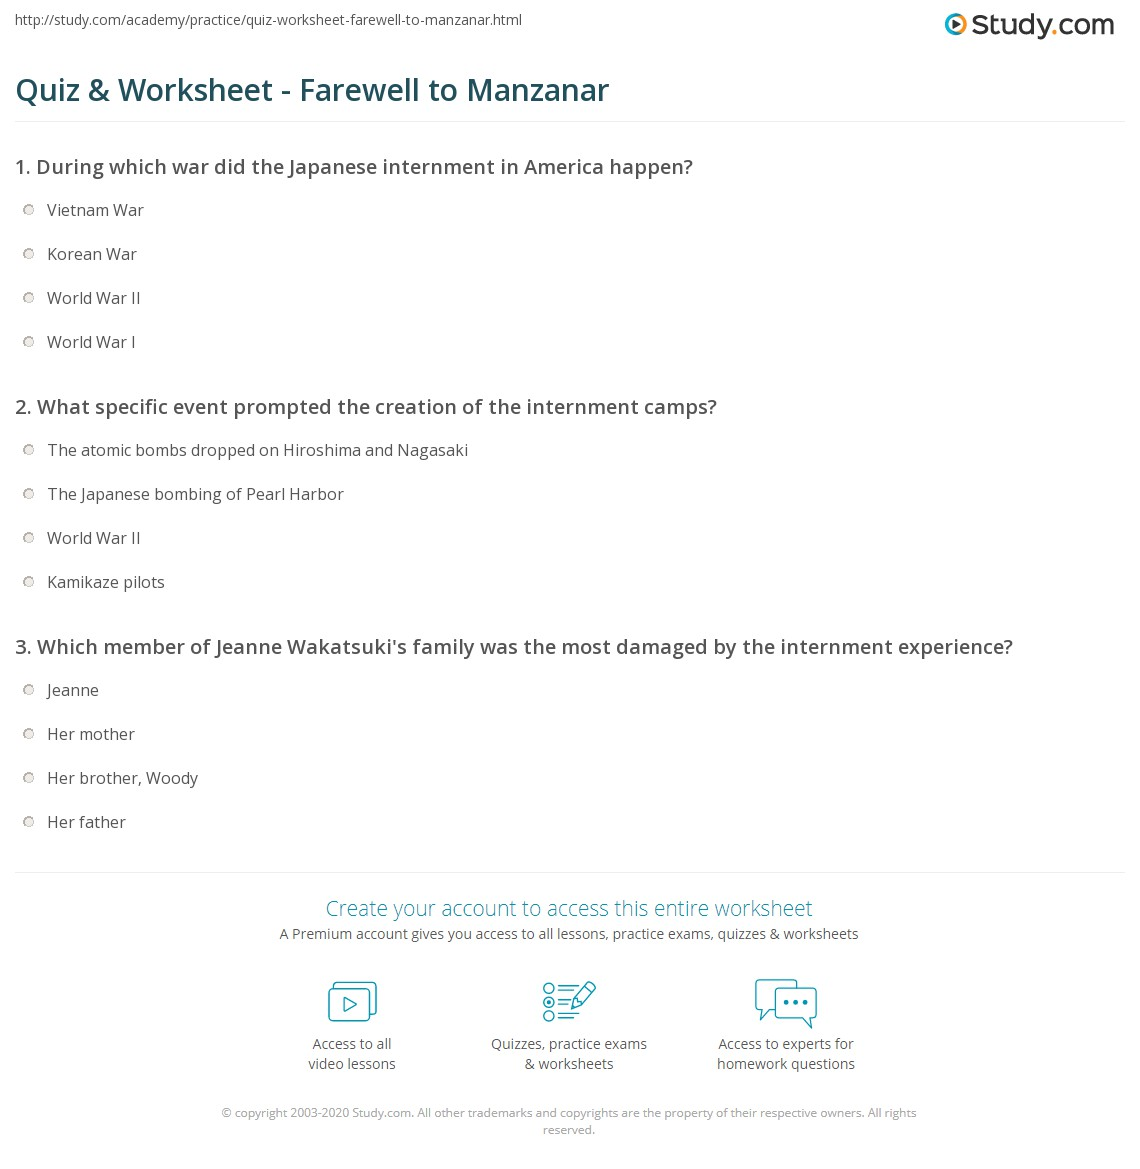 Worksheets Farewell To Manzanar Worksheets quiz worksheet farewell to manzanar study com print summary characters themes author worksheet